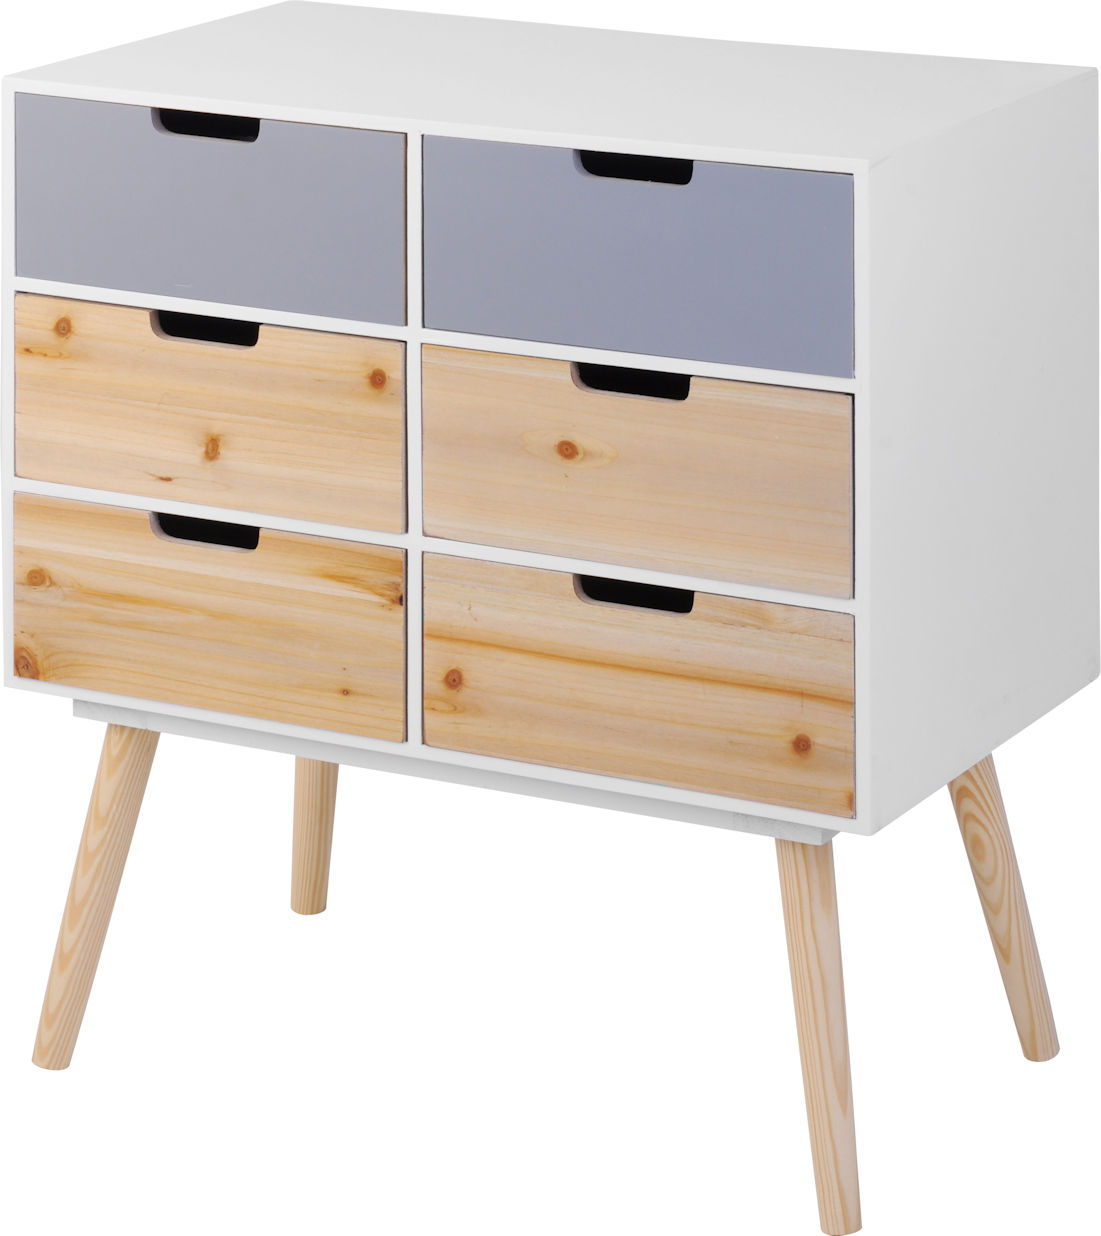 holz kommode retro design 6 schubladen beistelltisch konsolentisch sideboard ebay. Black Bedroom Furniture Sets. Home Design Ideas